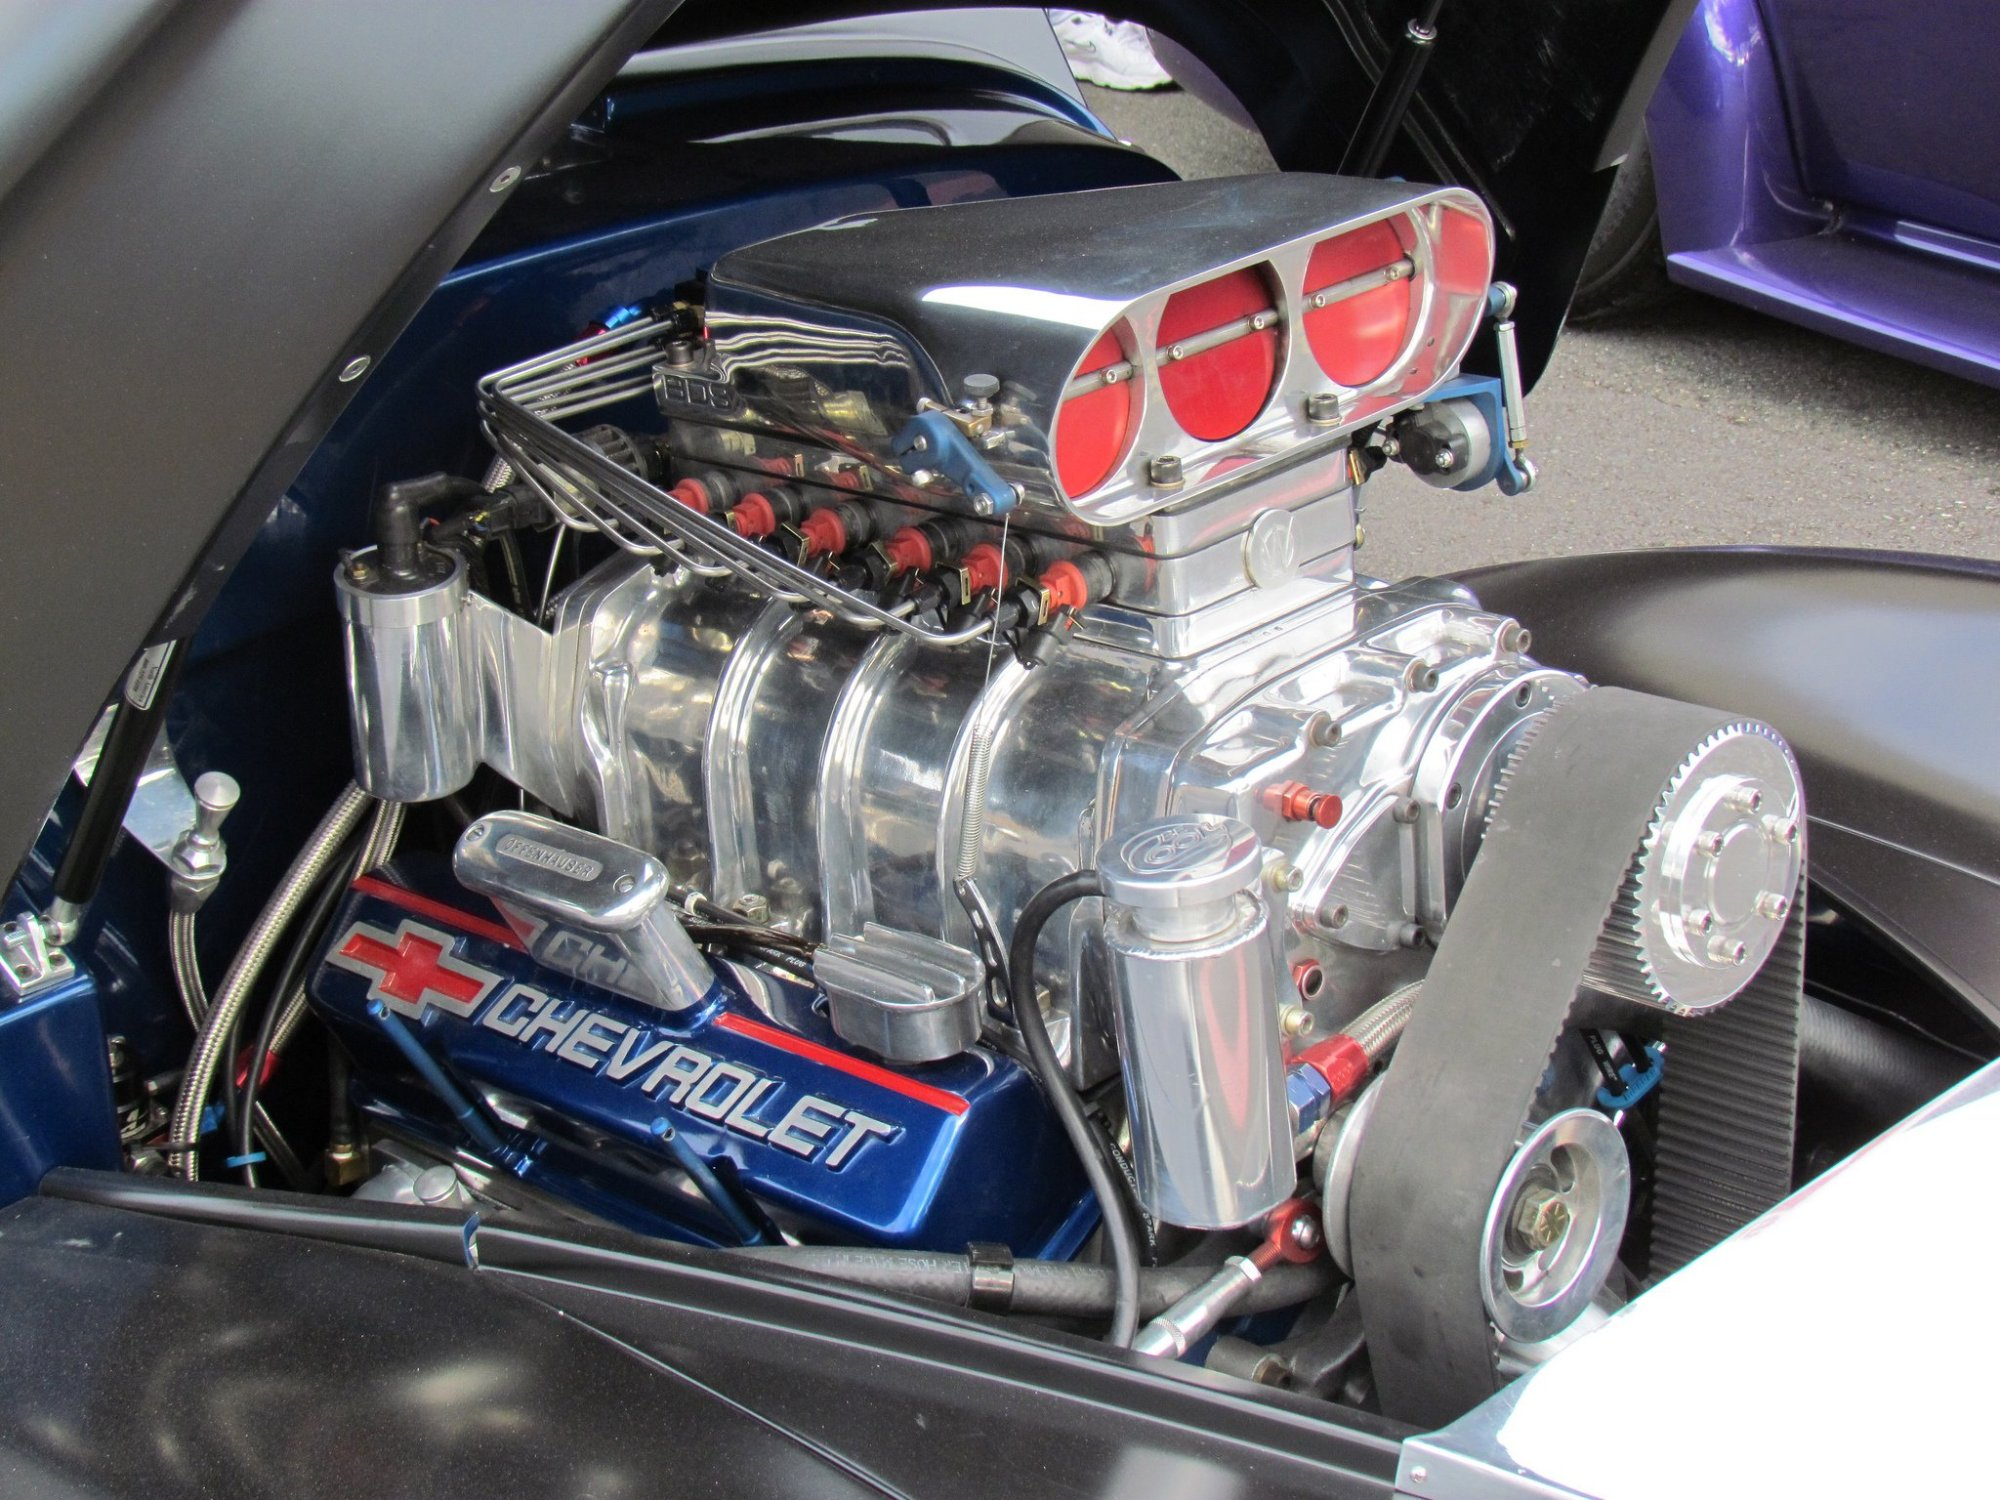 hight resolution of supercharged engines v8 cars hemi drags wallpaper 2048x1536 562961 wallpaperup